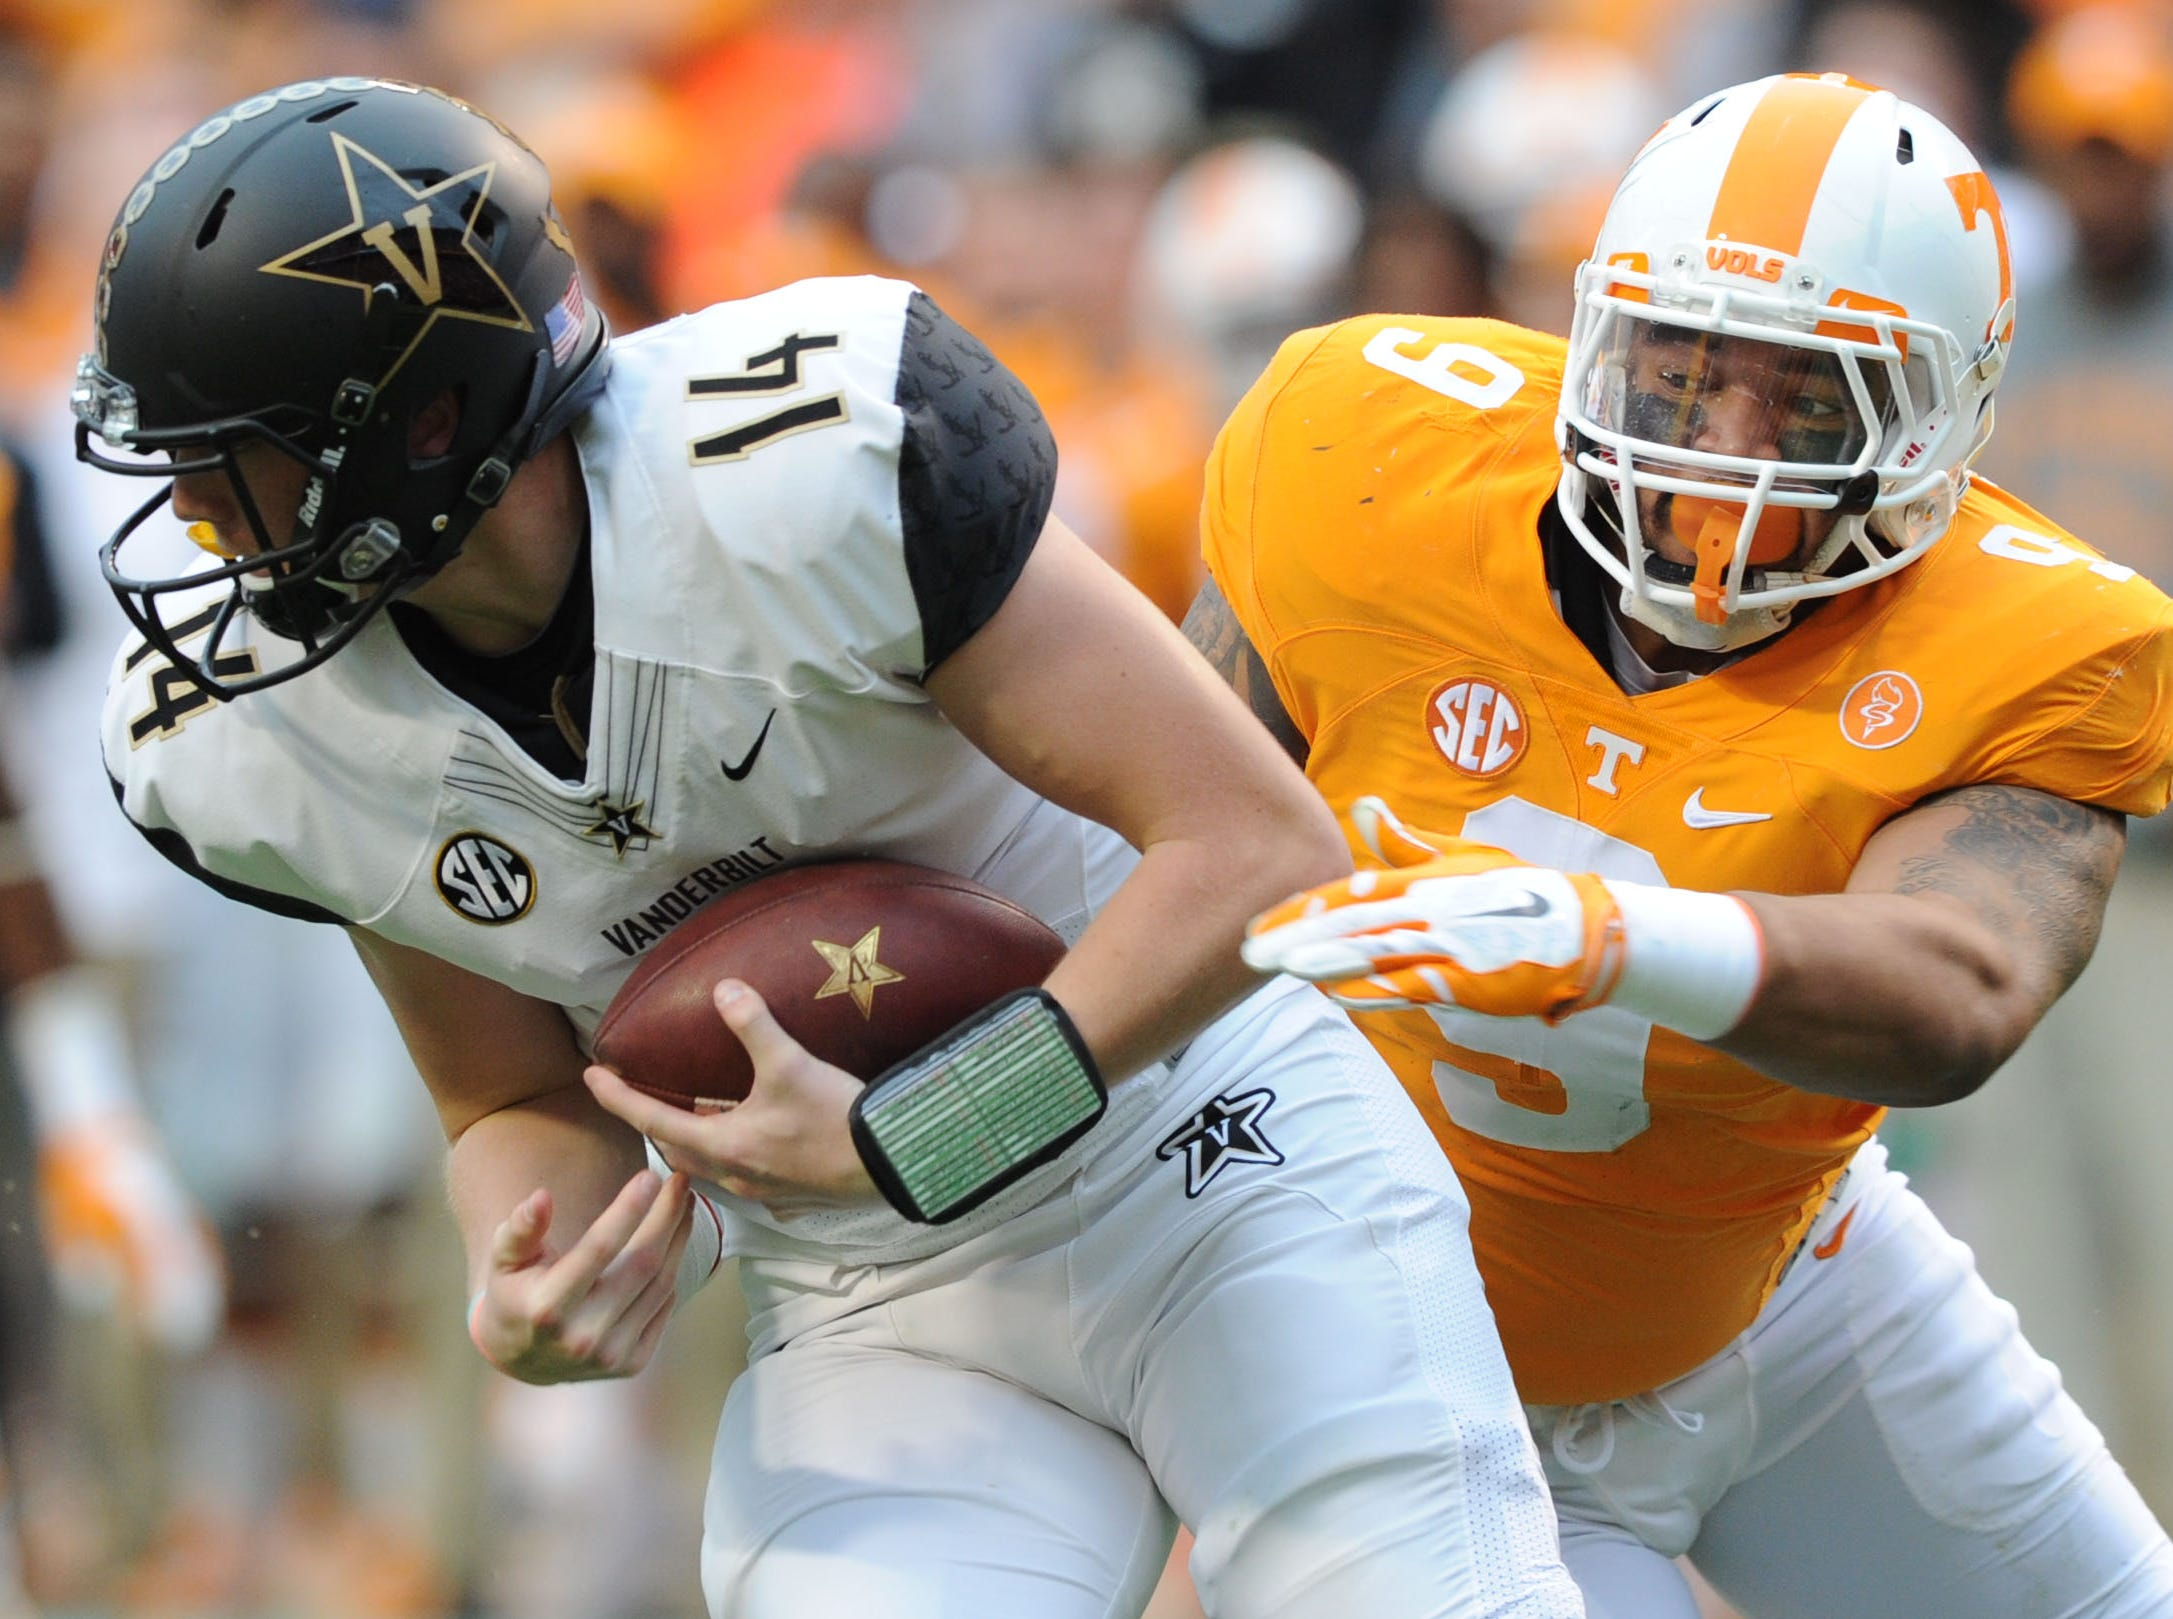 Tennessee defensive end Derek Barnett (9) chases down Vanderbilt quarterback Kyle Shurmur (14) during the first half at Neyland Stadium in Knoxville, Tenn. on Saturday, Nov. 28, 2015.